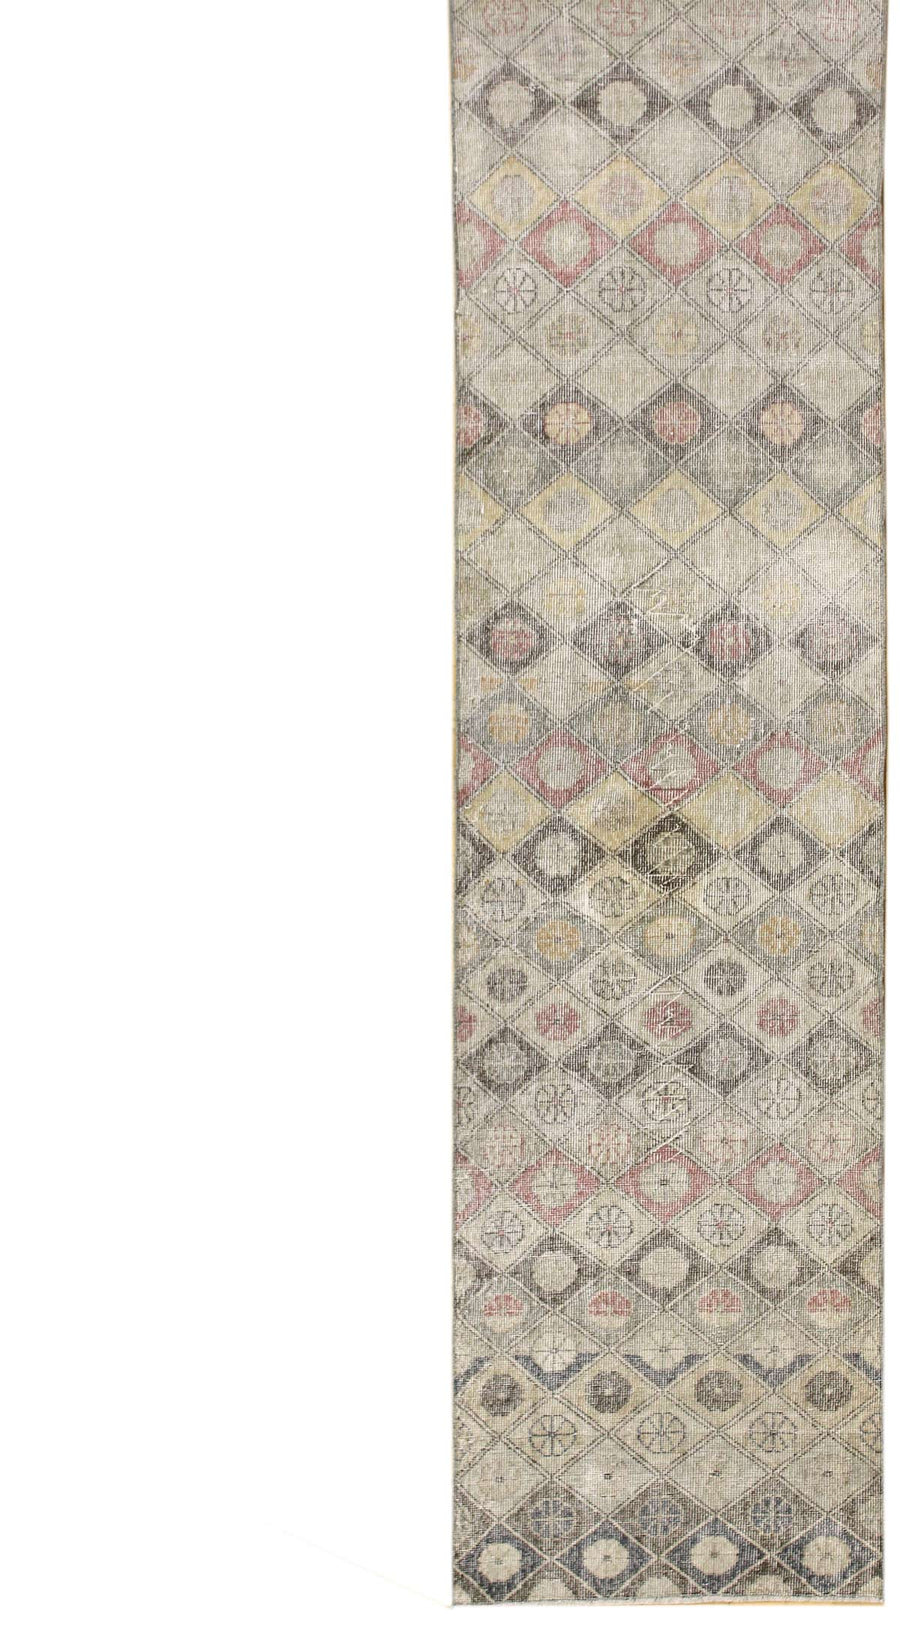 DECO HANDKNOTTED RUG, J45417